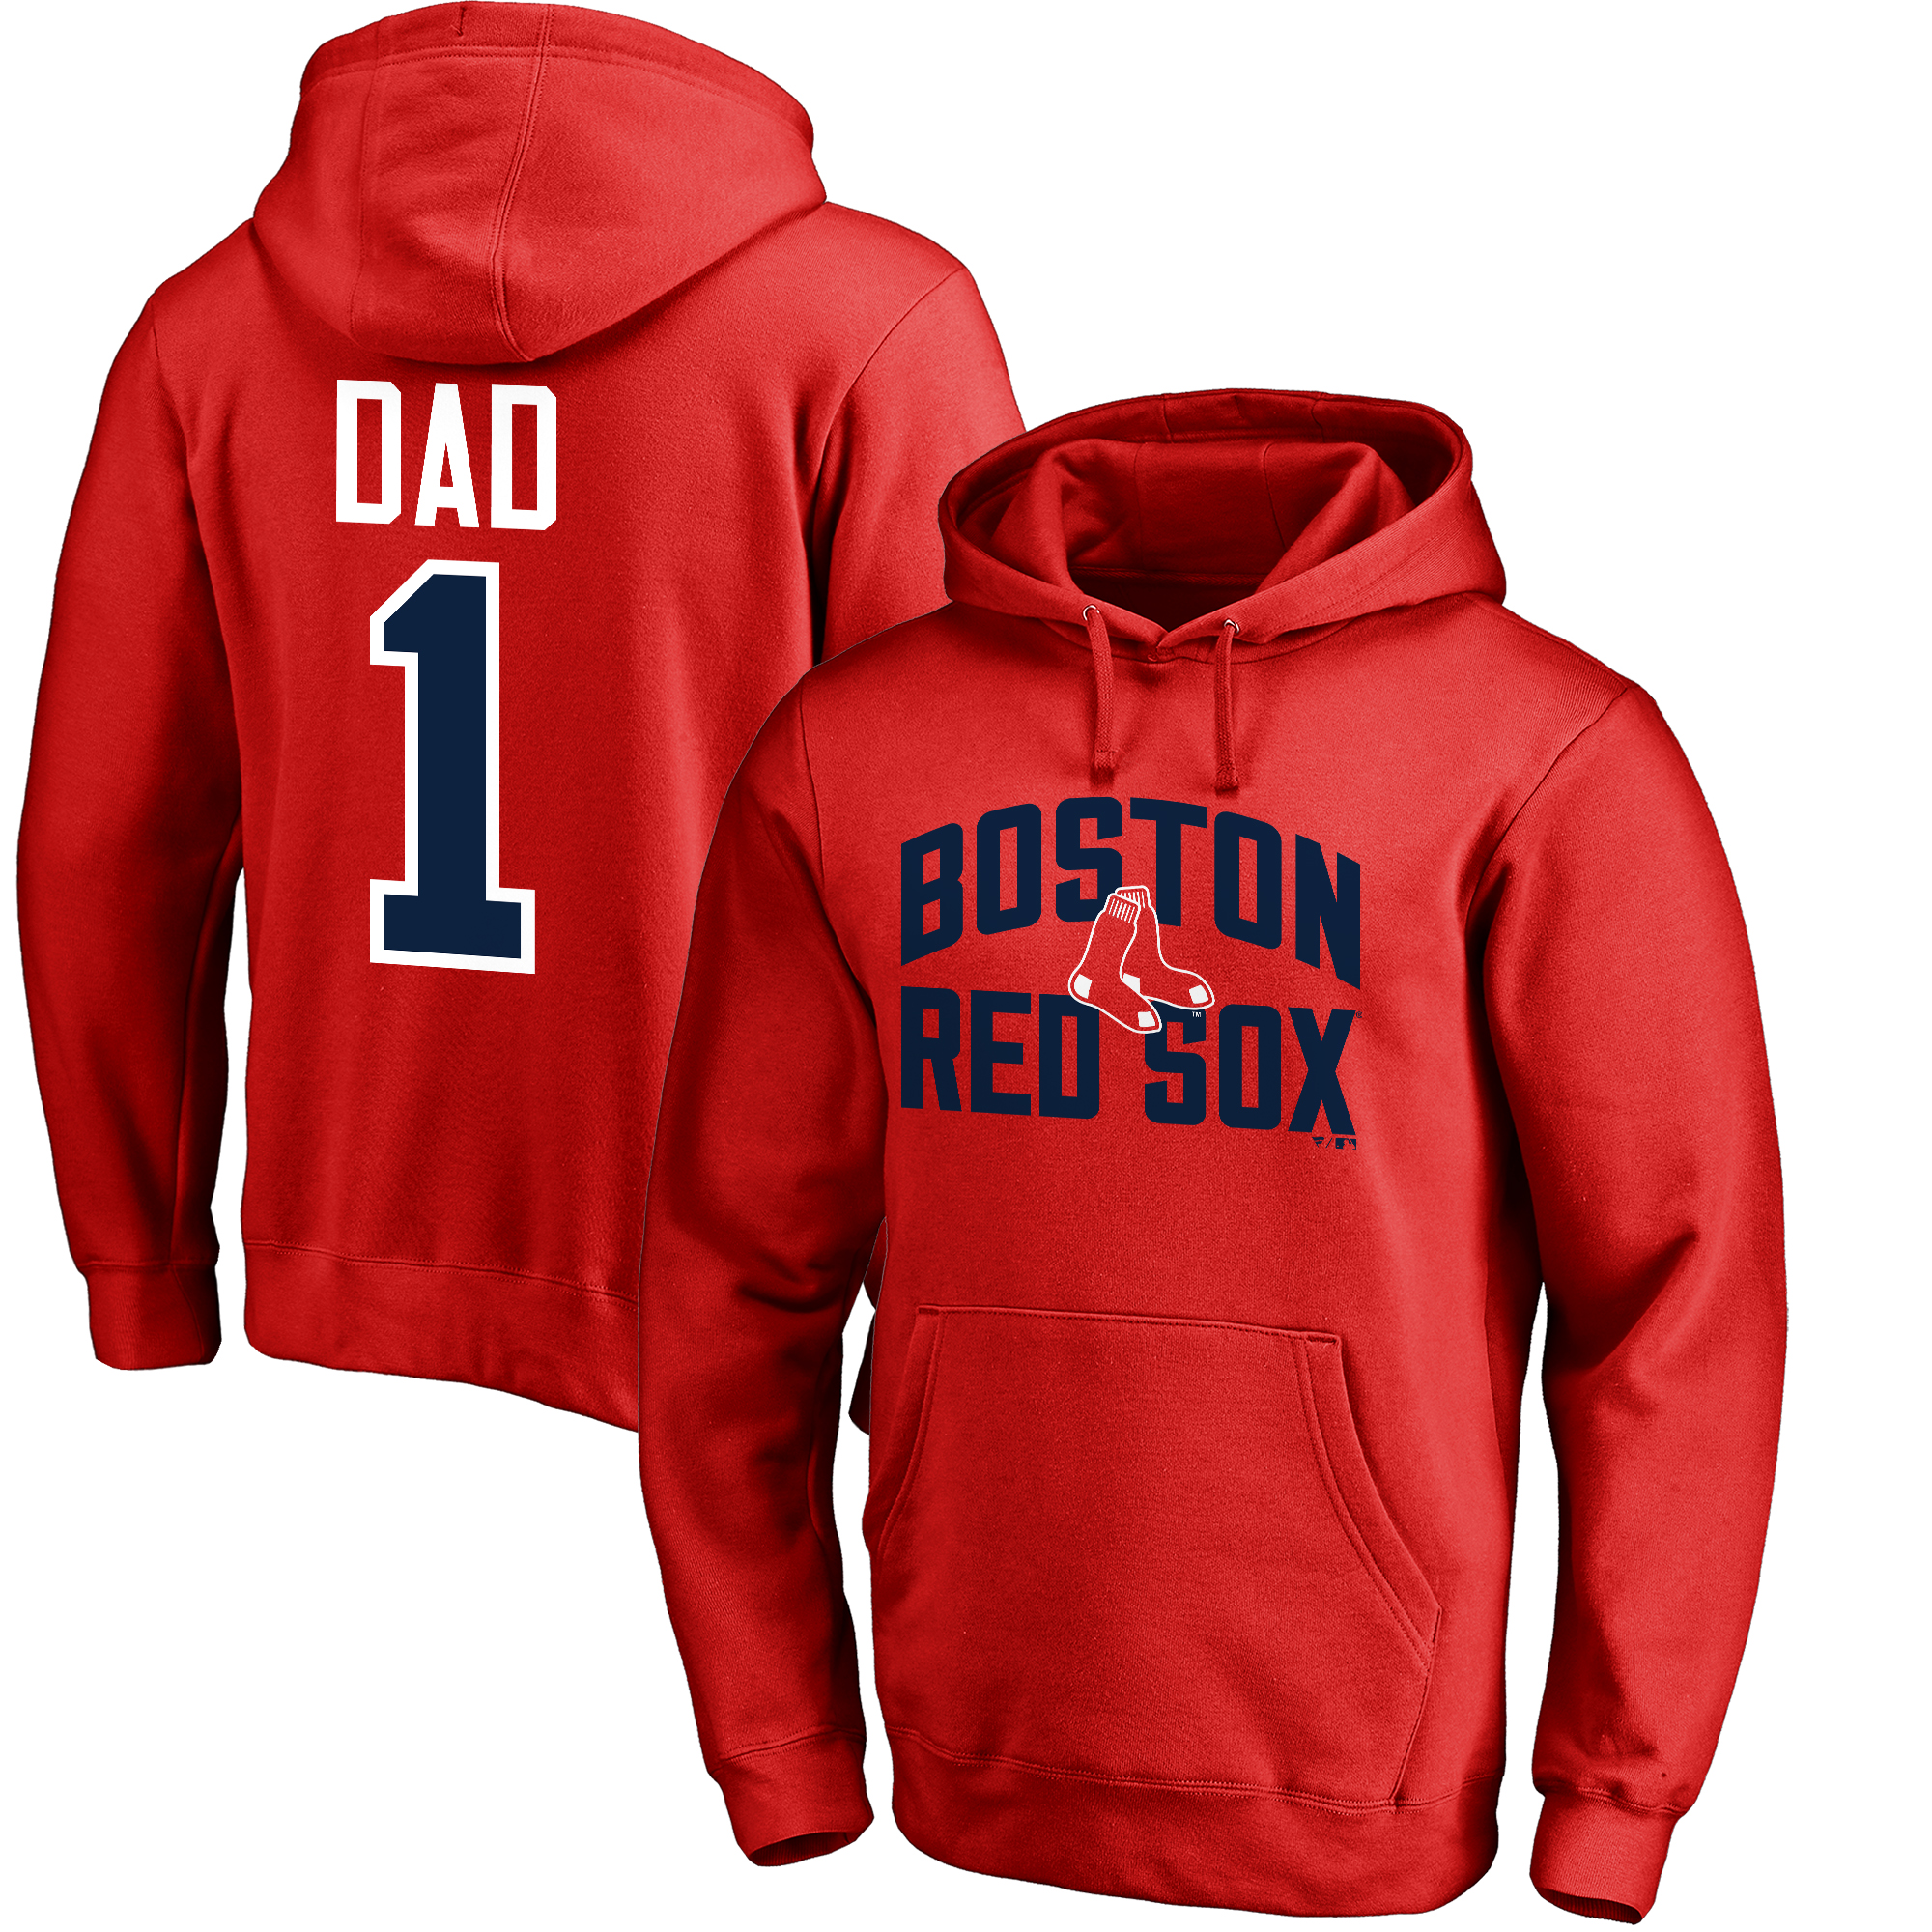 Boston Red Sox Fanatics Branded 2018 Father's Day #1 Dad Pullover Hoodie - Red